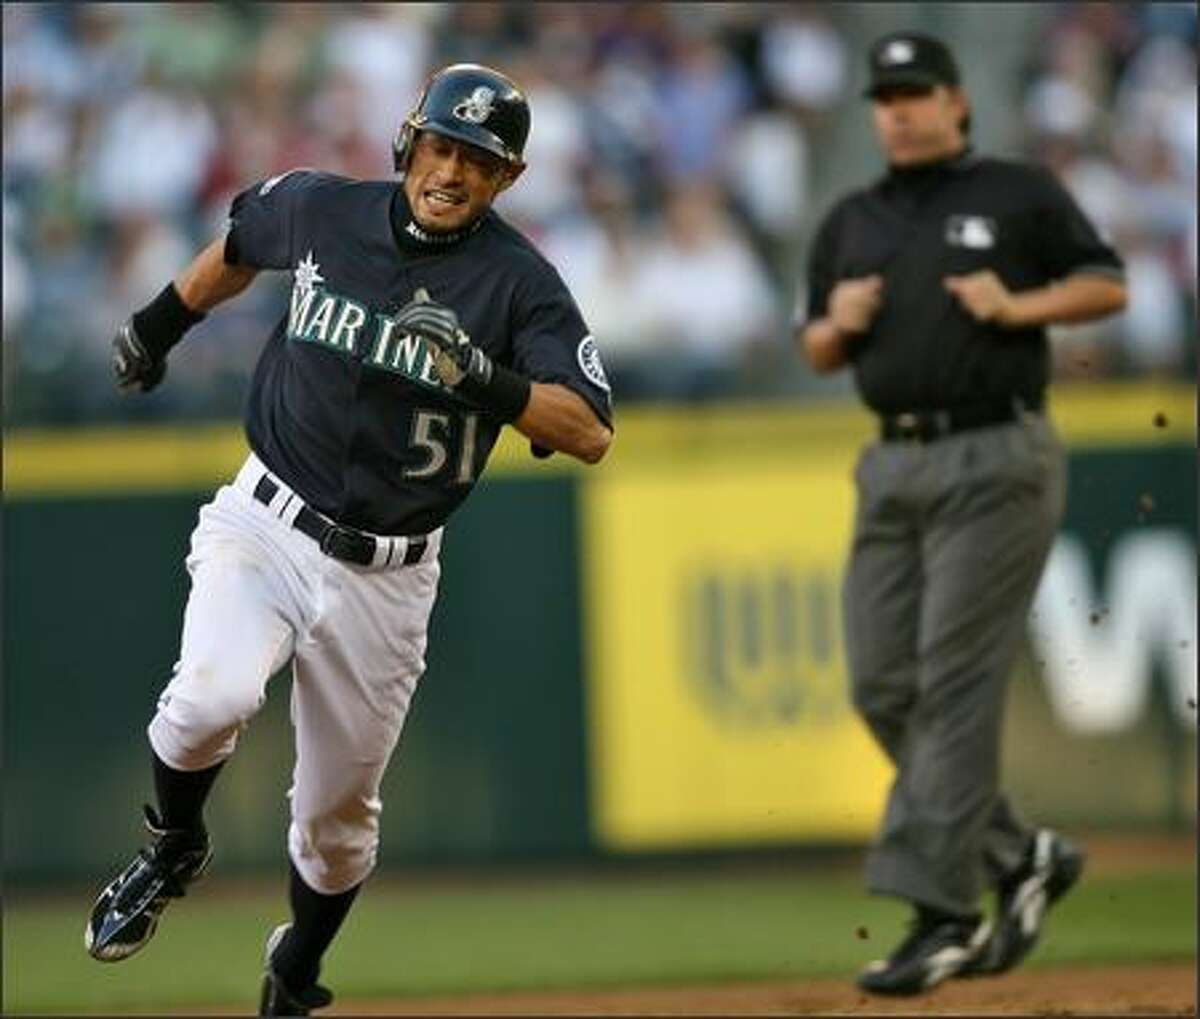 Seattle Mariners Ichiro Suzuki kicks up some dirt as he rounds second heads for third on a fly ball to right field against the Los Angeles Angels during third inning action at Safeco Field in Seattle, Wash., Monday July 30, 2007.